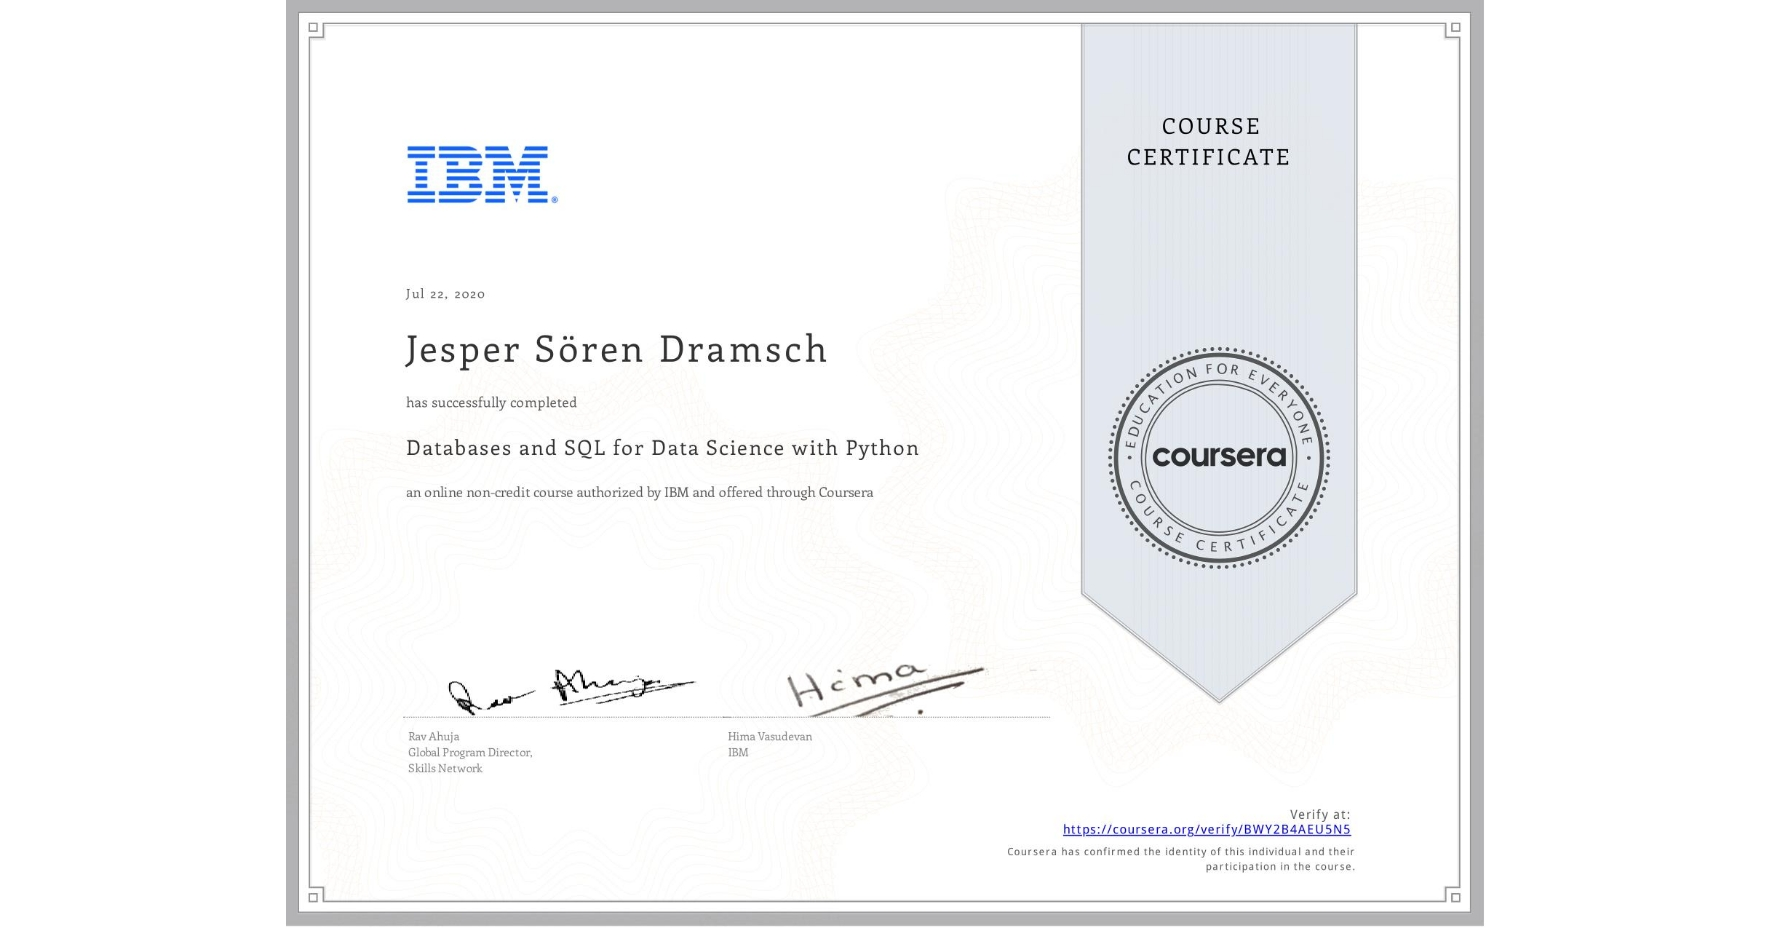 View certificate for Jesper Sören Dramsch, Databases and SQL for Data Science, an online non-credit course authorized by IBM and offered through Coursera